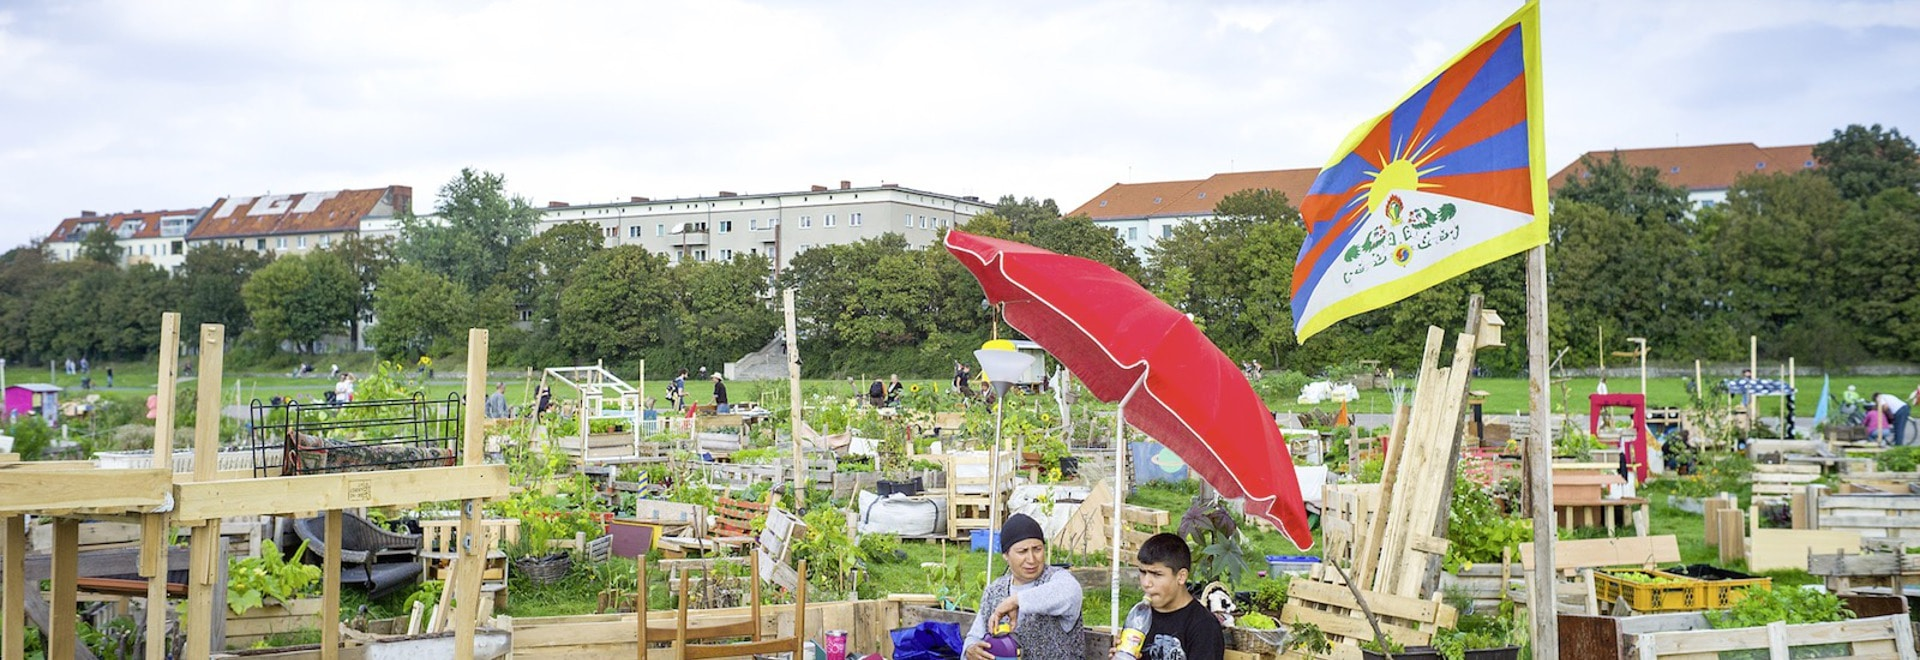 """Make City, taking place from June 11 to 28 in Berlin, is a festival concerned with """"re-sourcing"""" the urban – just as here at the former Tempelhof airfield. (Photo: © Michael Jungblut)"""